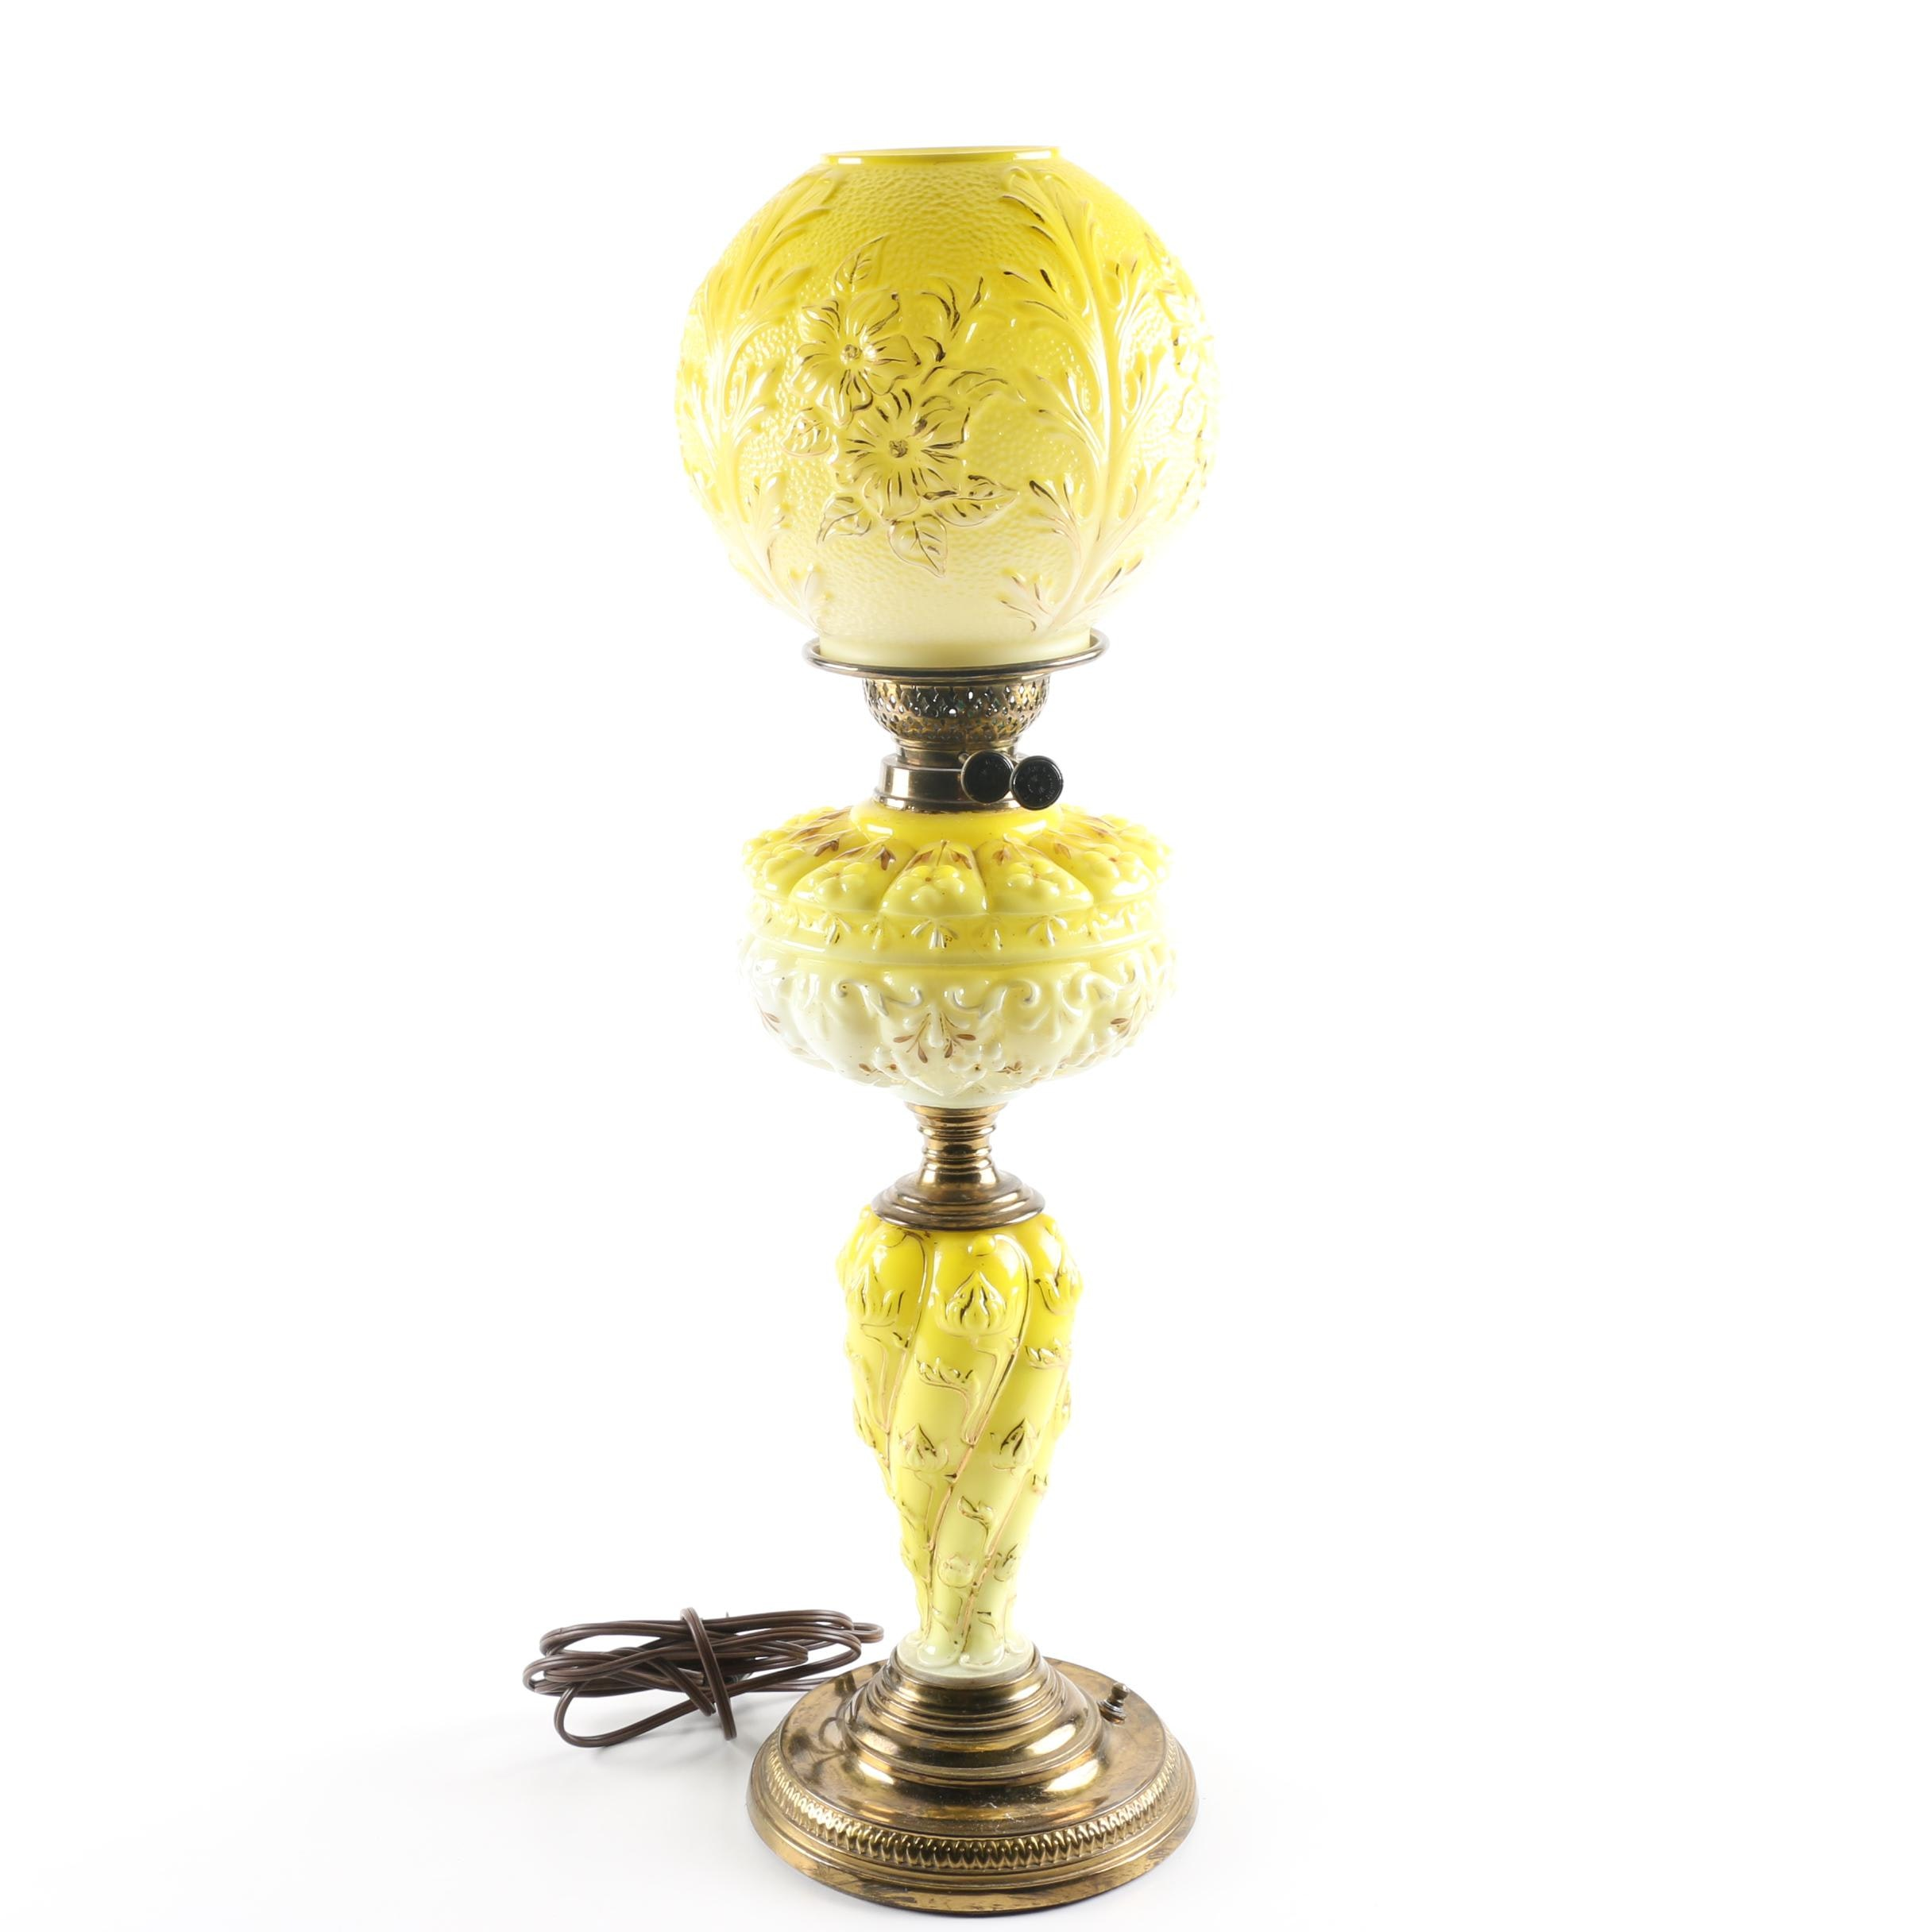 Antique Young's Yellow Glass Parlor Lamp